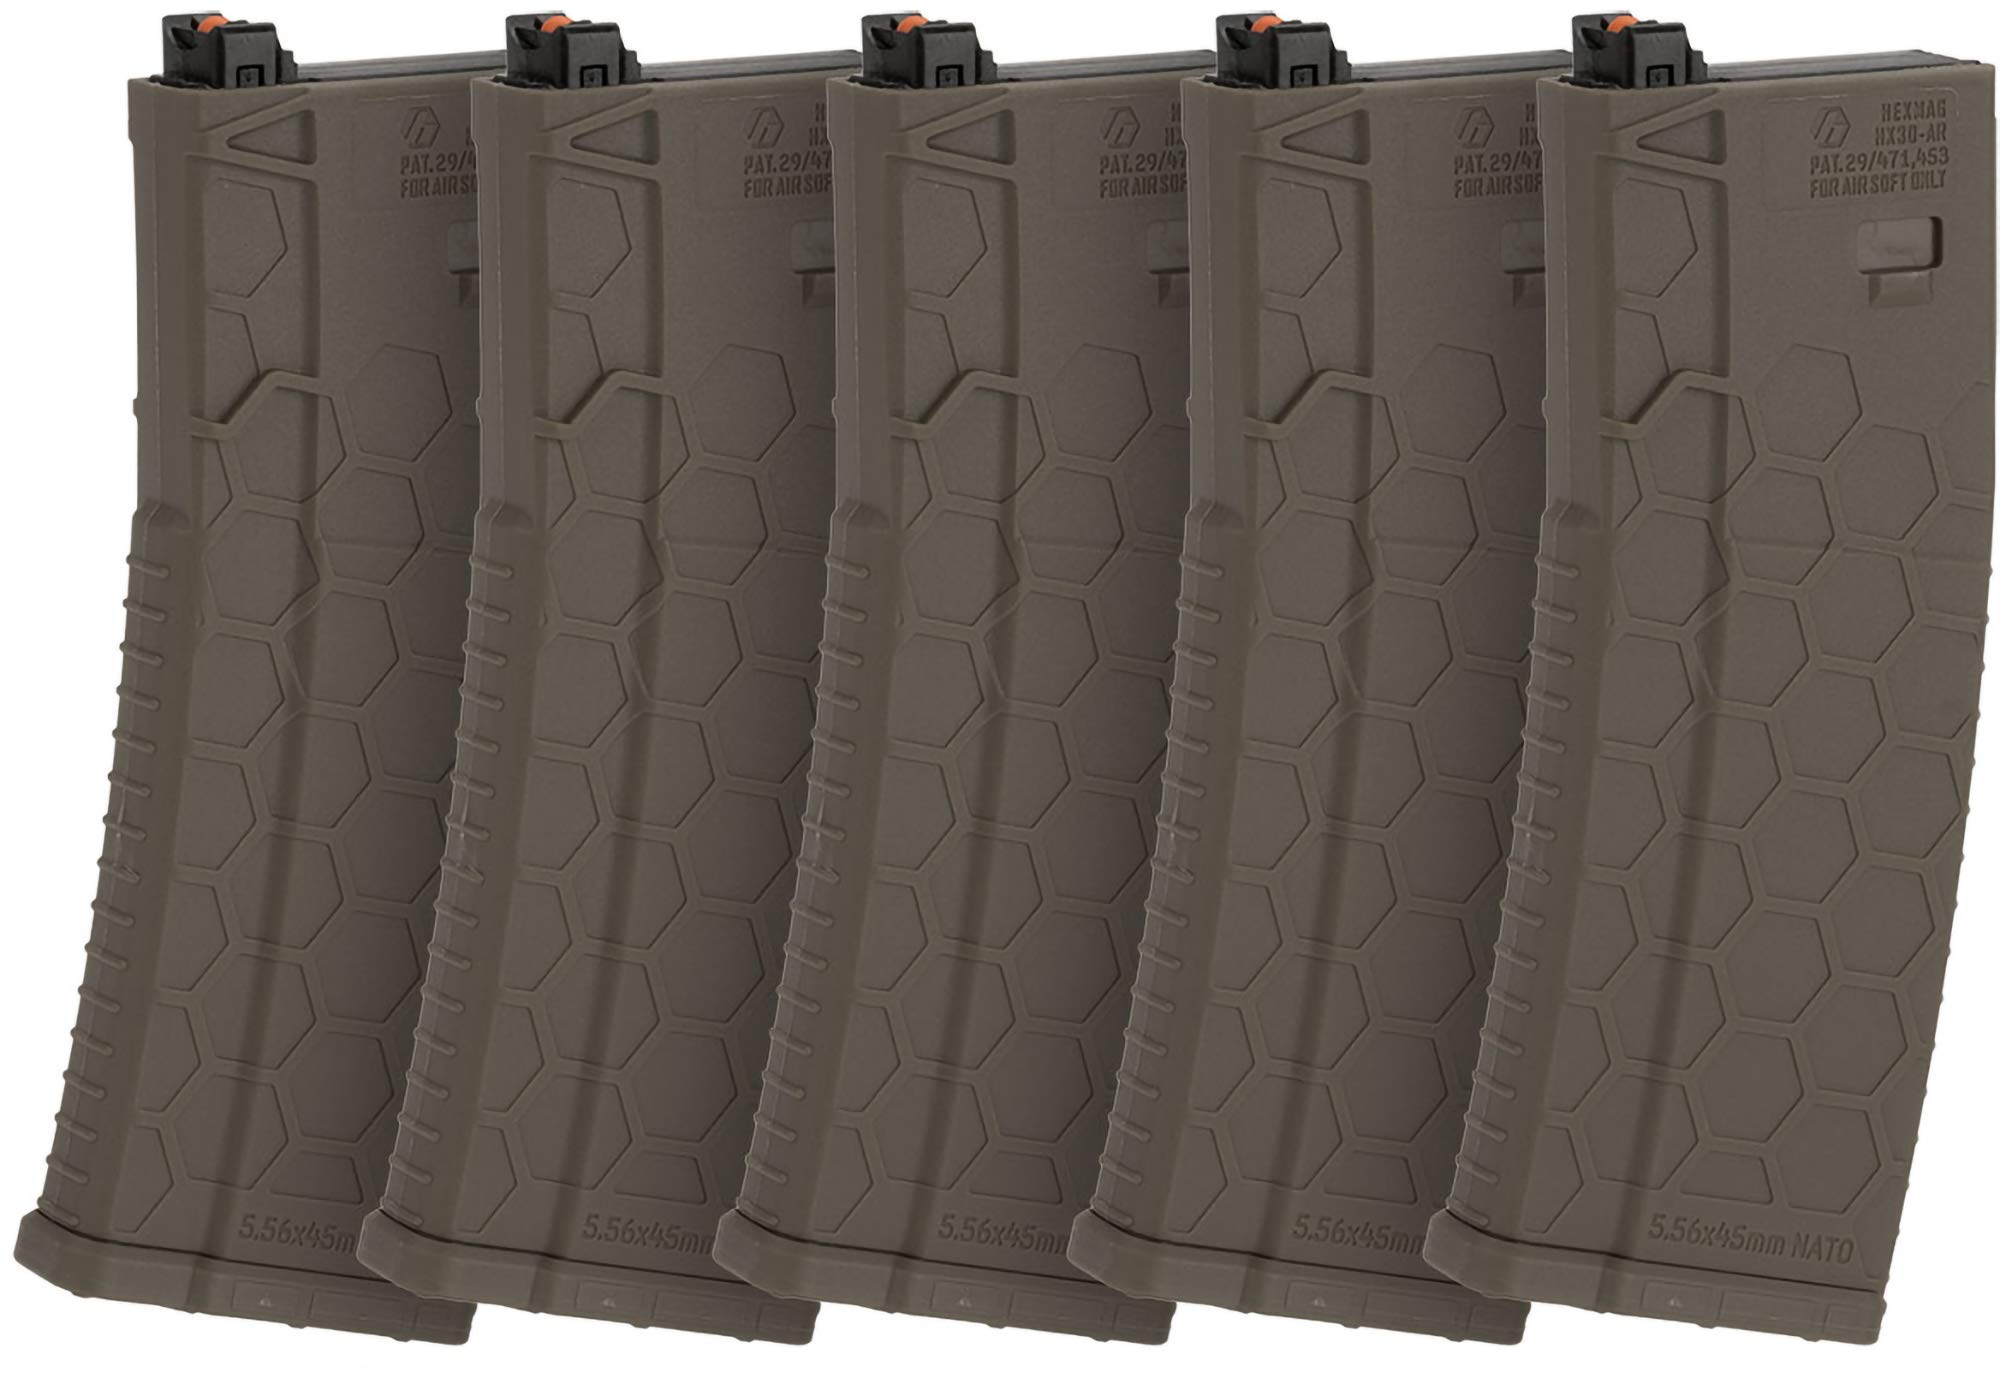 Evike Hexmag Airsoft 120rds Polymer Mid-Cap Magazine for M4 / M16 Series Airsoft PTW Rifles - Box of 5 (Color: Flat Dark Earth) by Evike